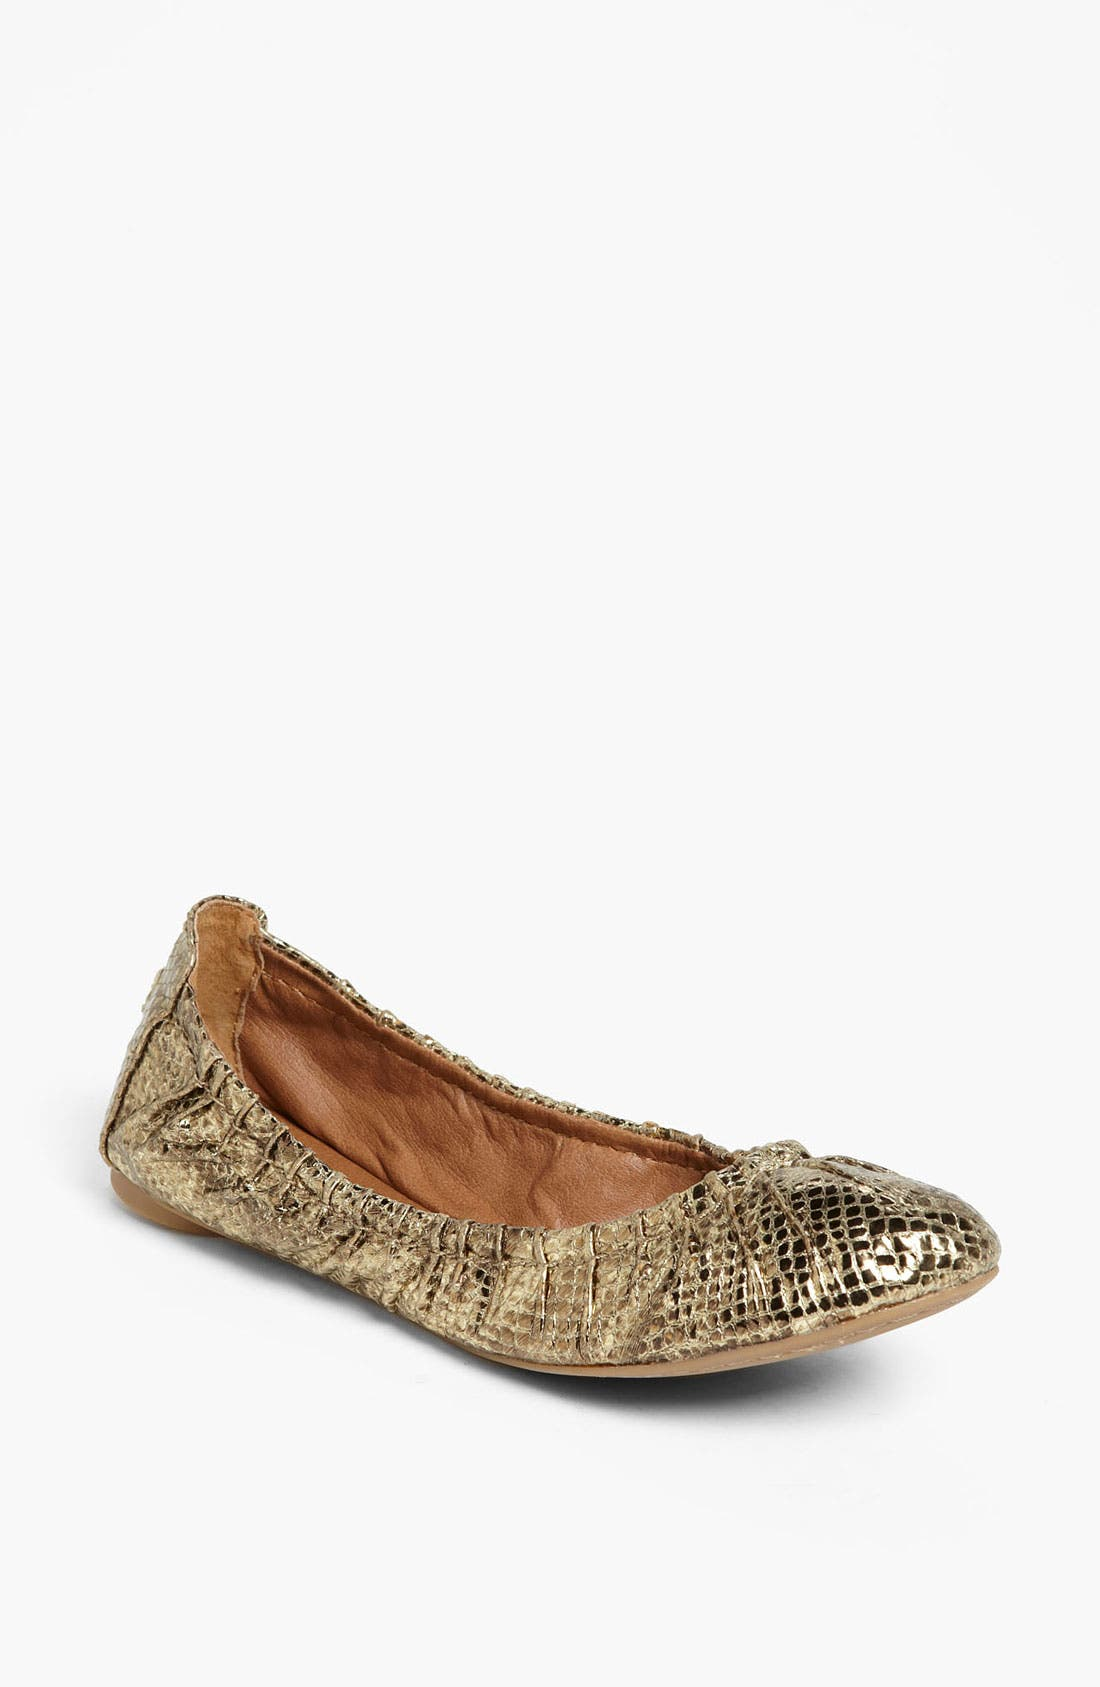 Alternate Image 1 Selected - Lucky Brand 'Erla' Flat